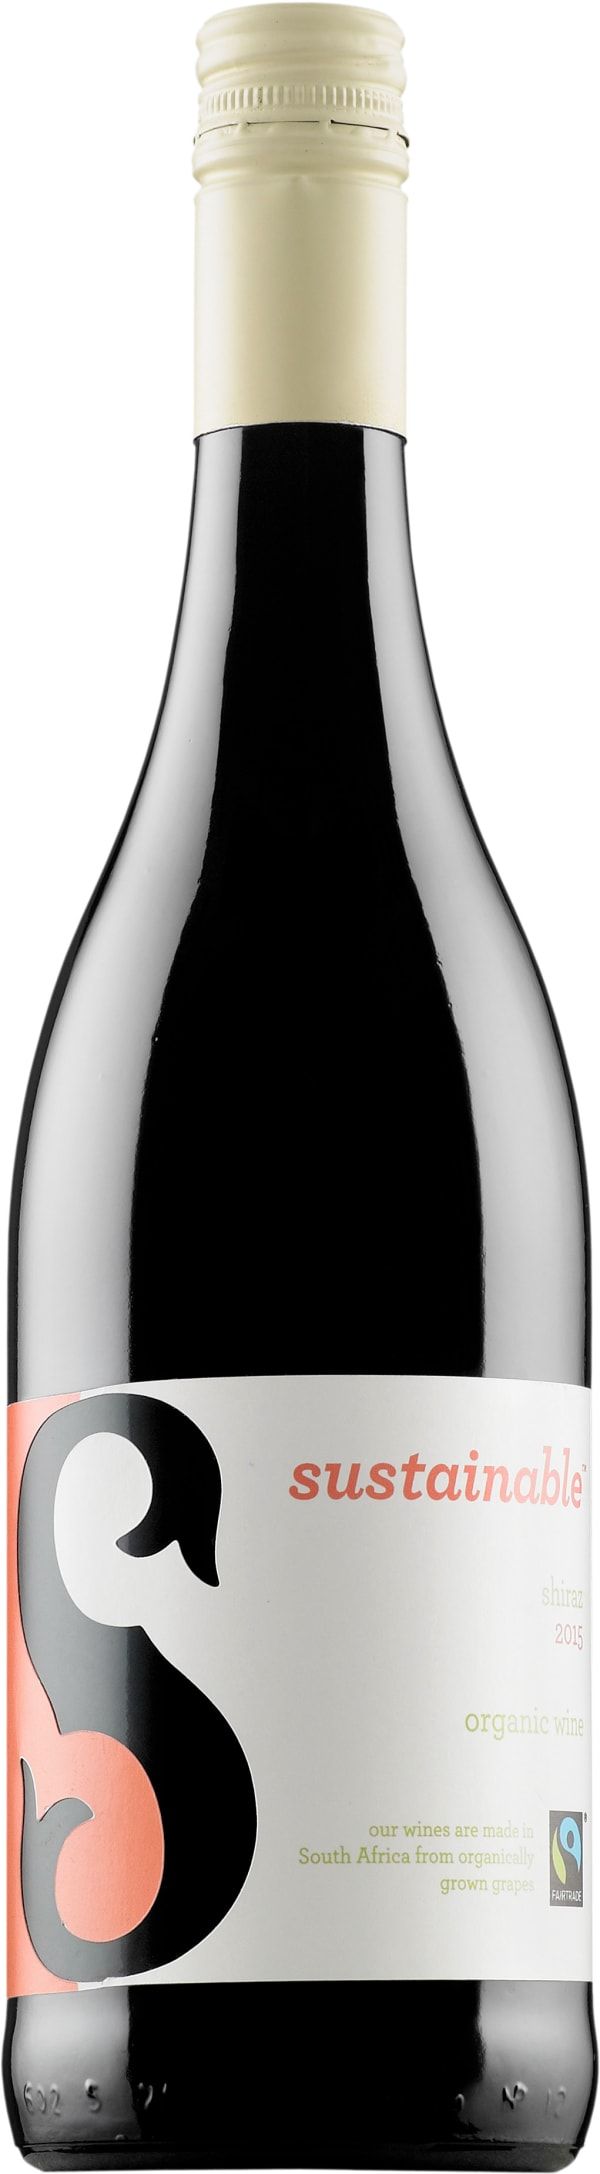 Sustainable Shiraz Organic 2016